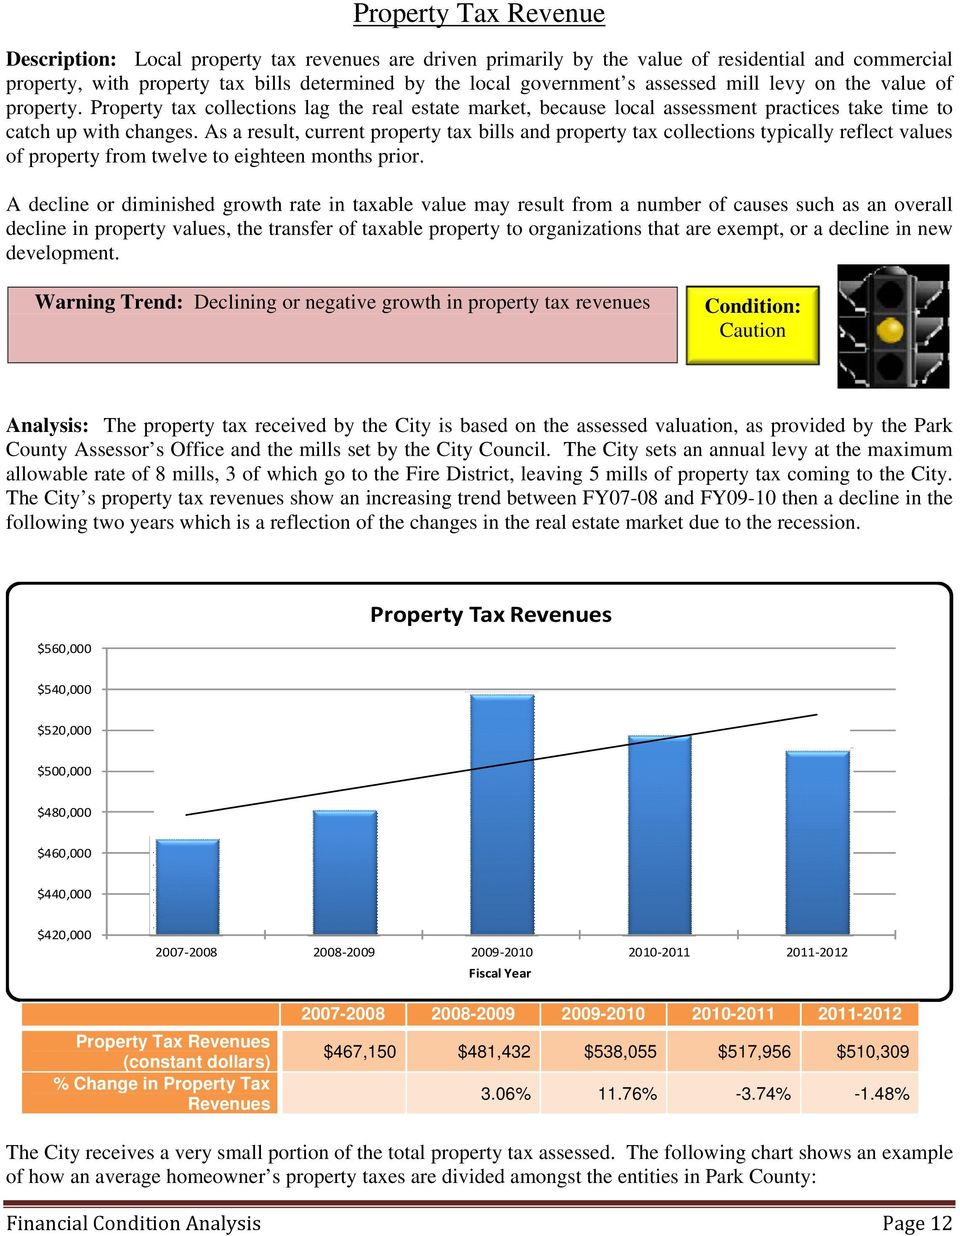 As a result, current property tax bills and property tax collections typically reflect values of property from twelve to eighteen months prior.